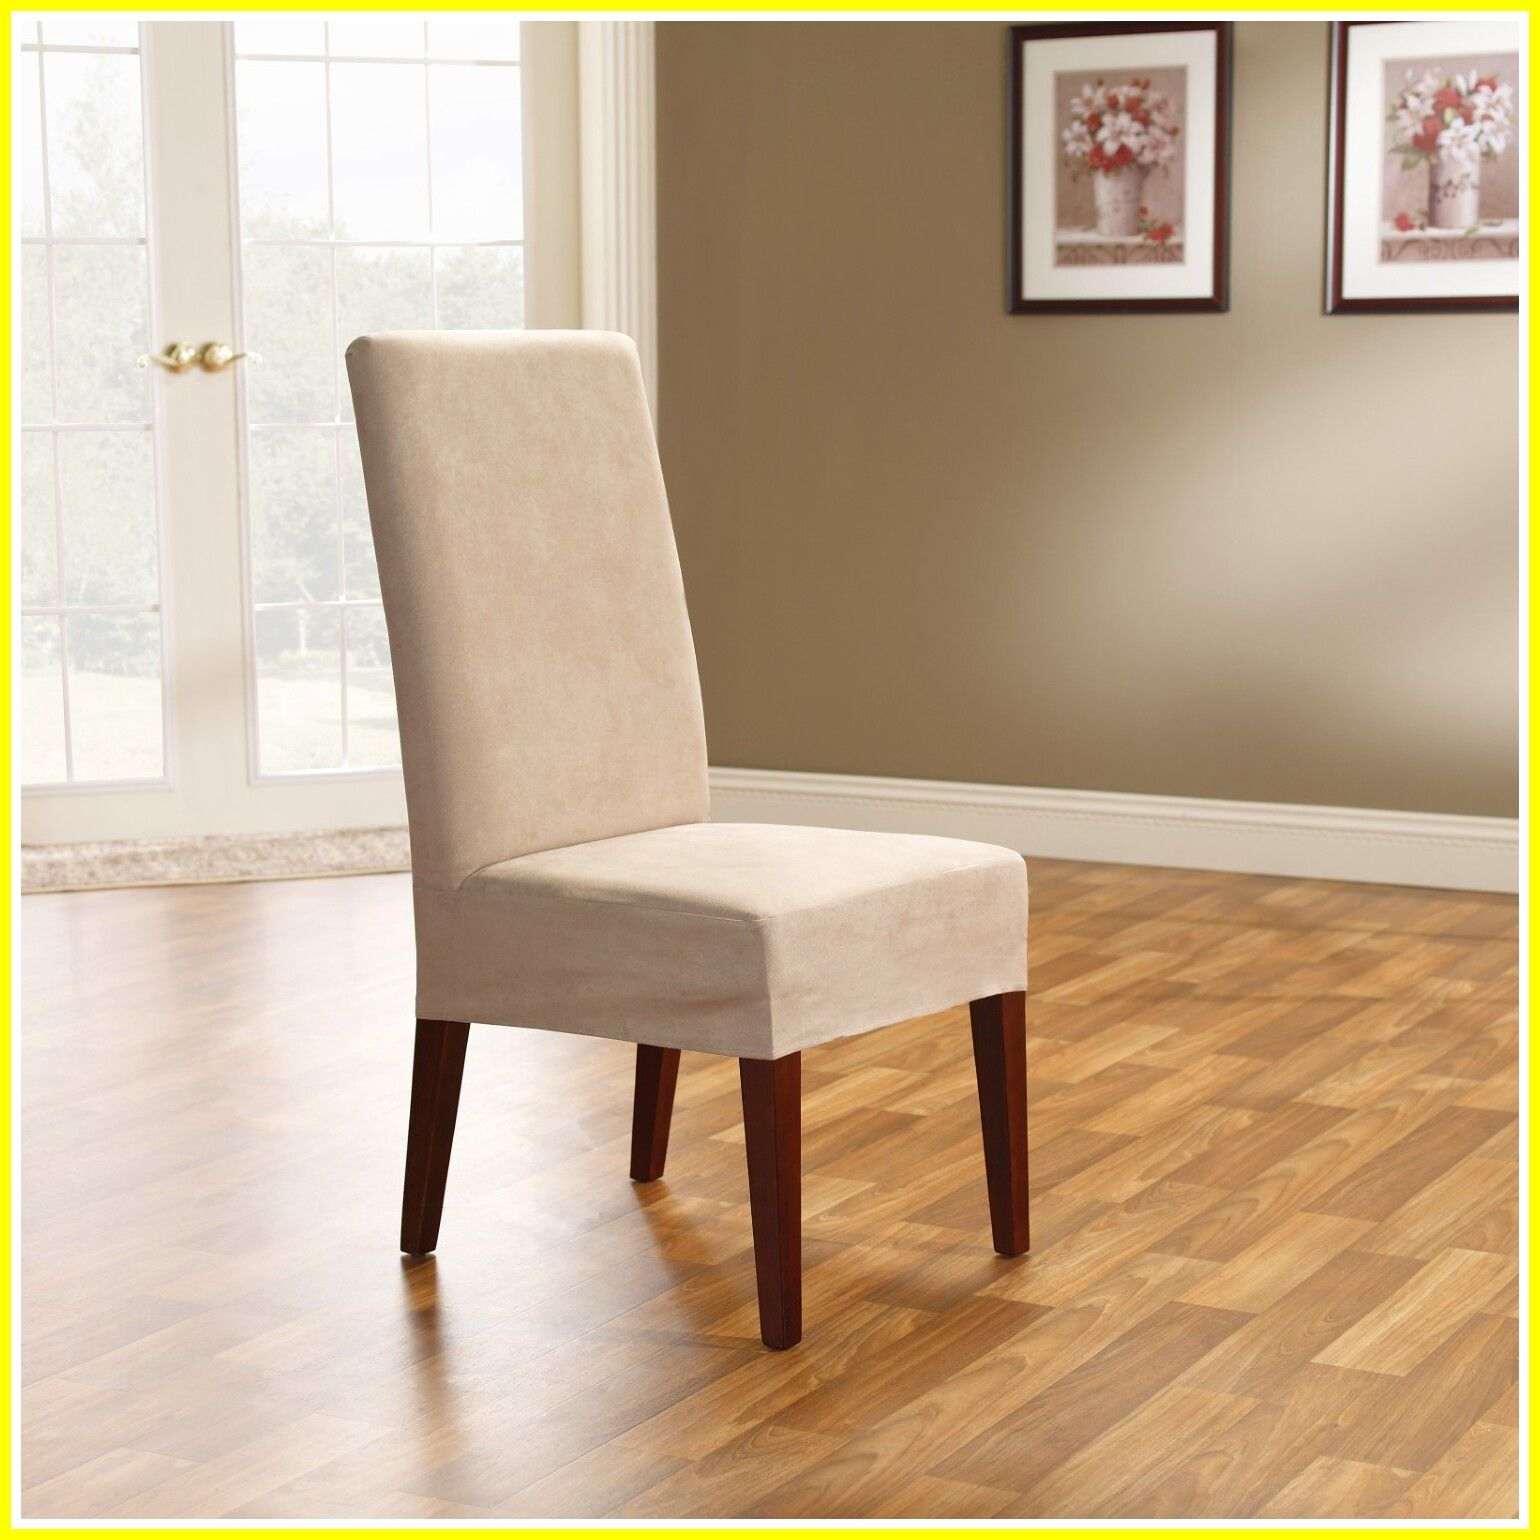 Chairs Dining Room Chair Slipcovers, Surefit Round Back Dining Room Chair Slipcover